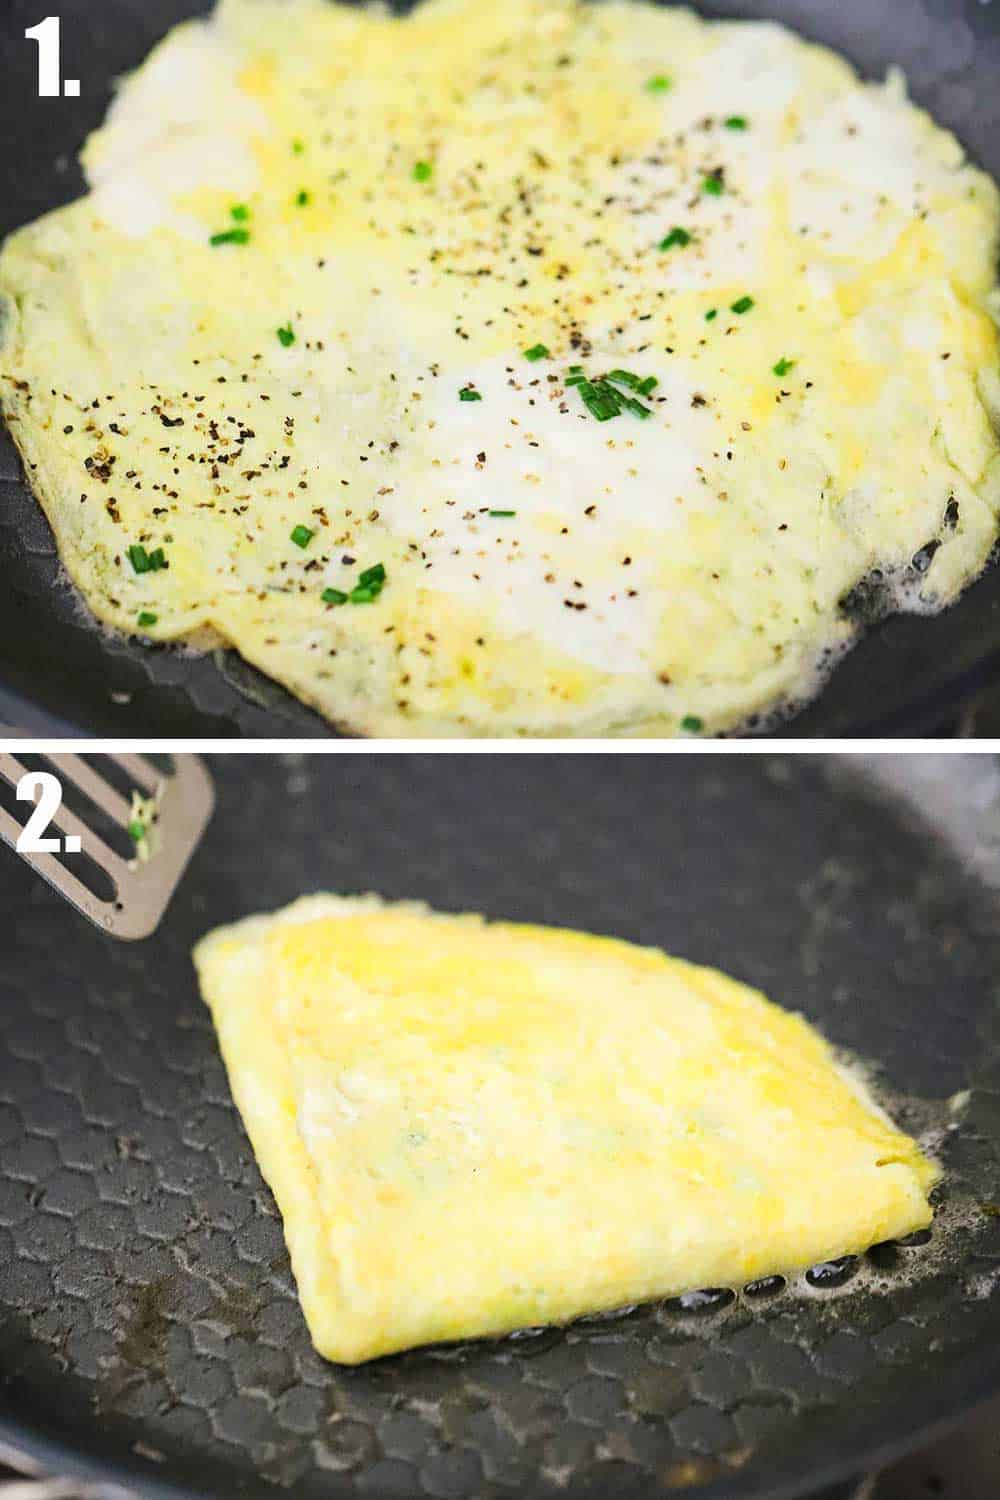 A skillet filled with a thin omlet and then a skillet with an omlet that's folded into a quarters.